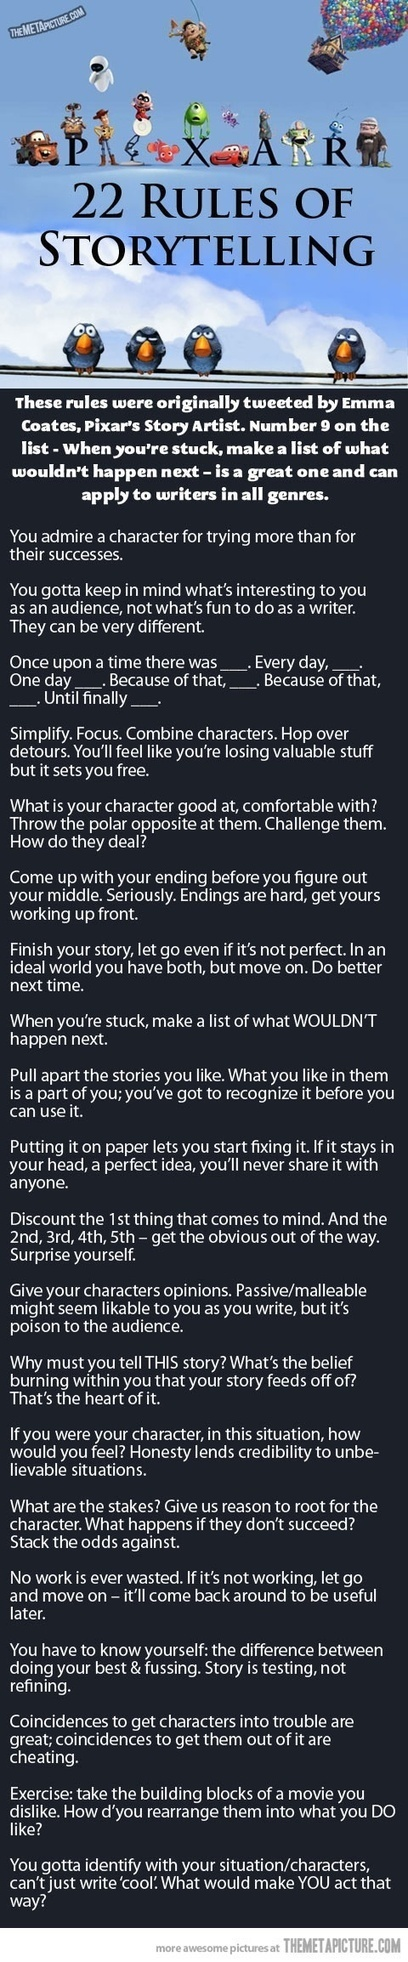 22 Rules of Storytelling by Pixar   Brand content   Scoop.it